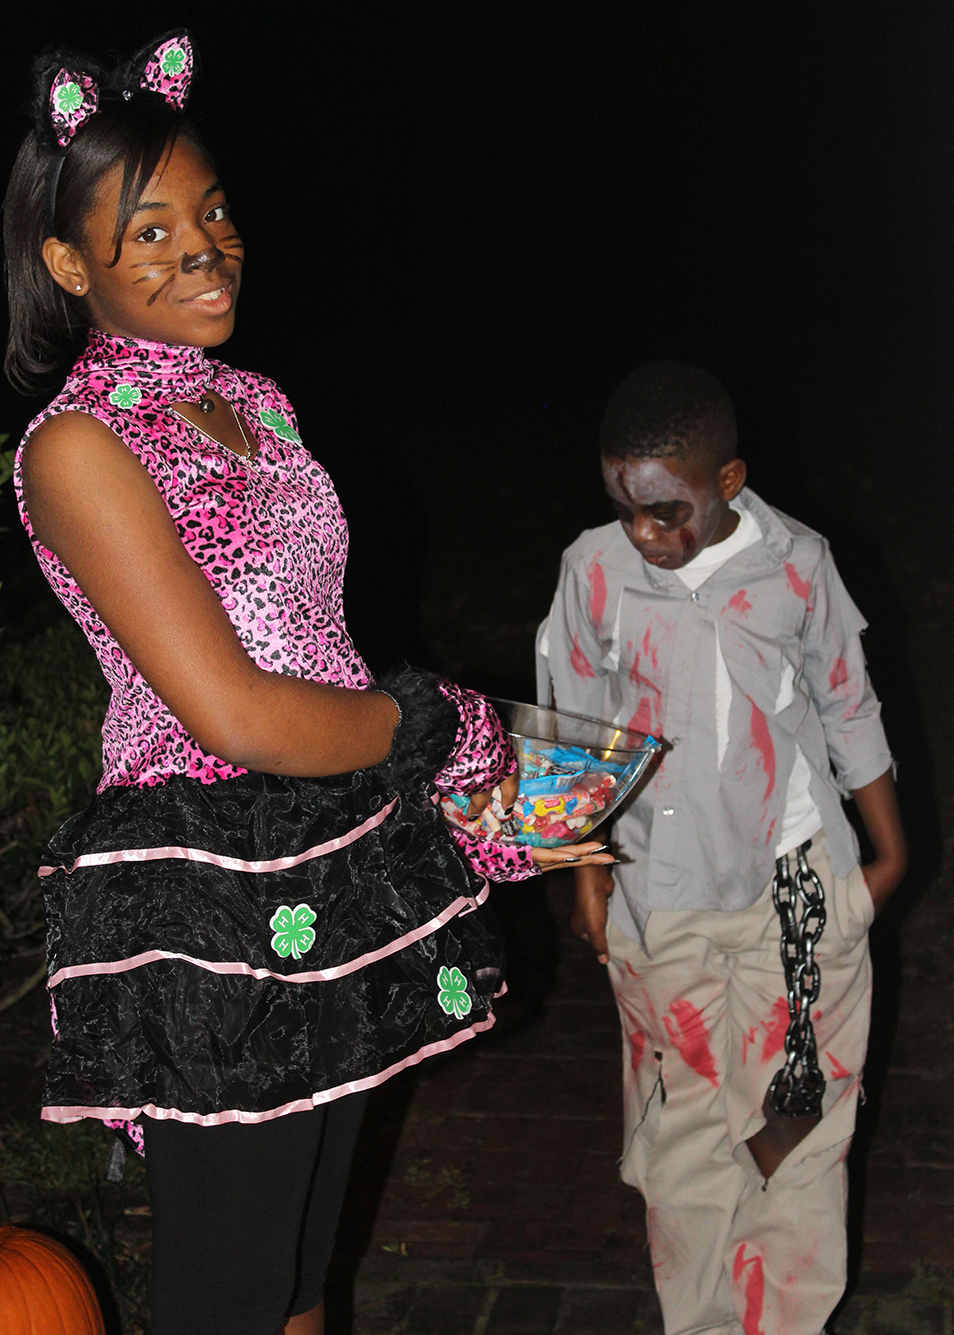 Two children dressed in costume with a bowl of candy while trick or treating.